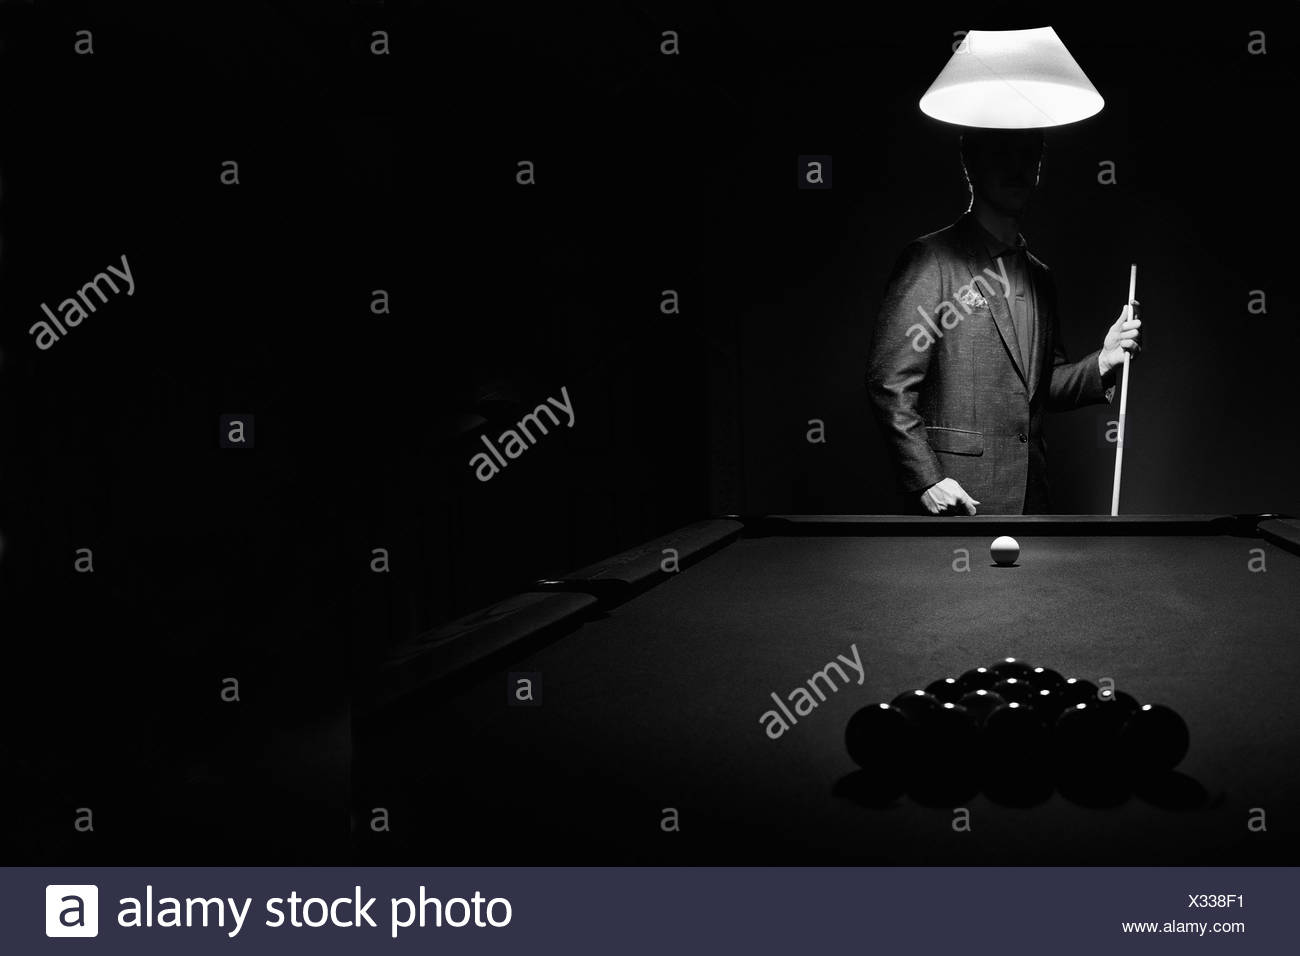 Mystery Pool Player Behind Rack Of Billiard Balls Stock Photo